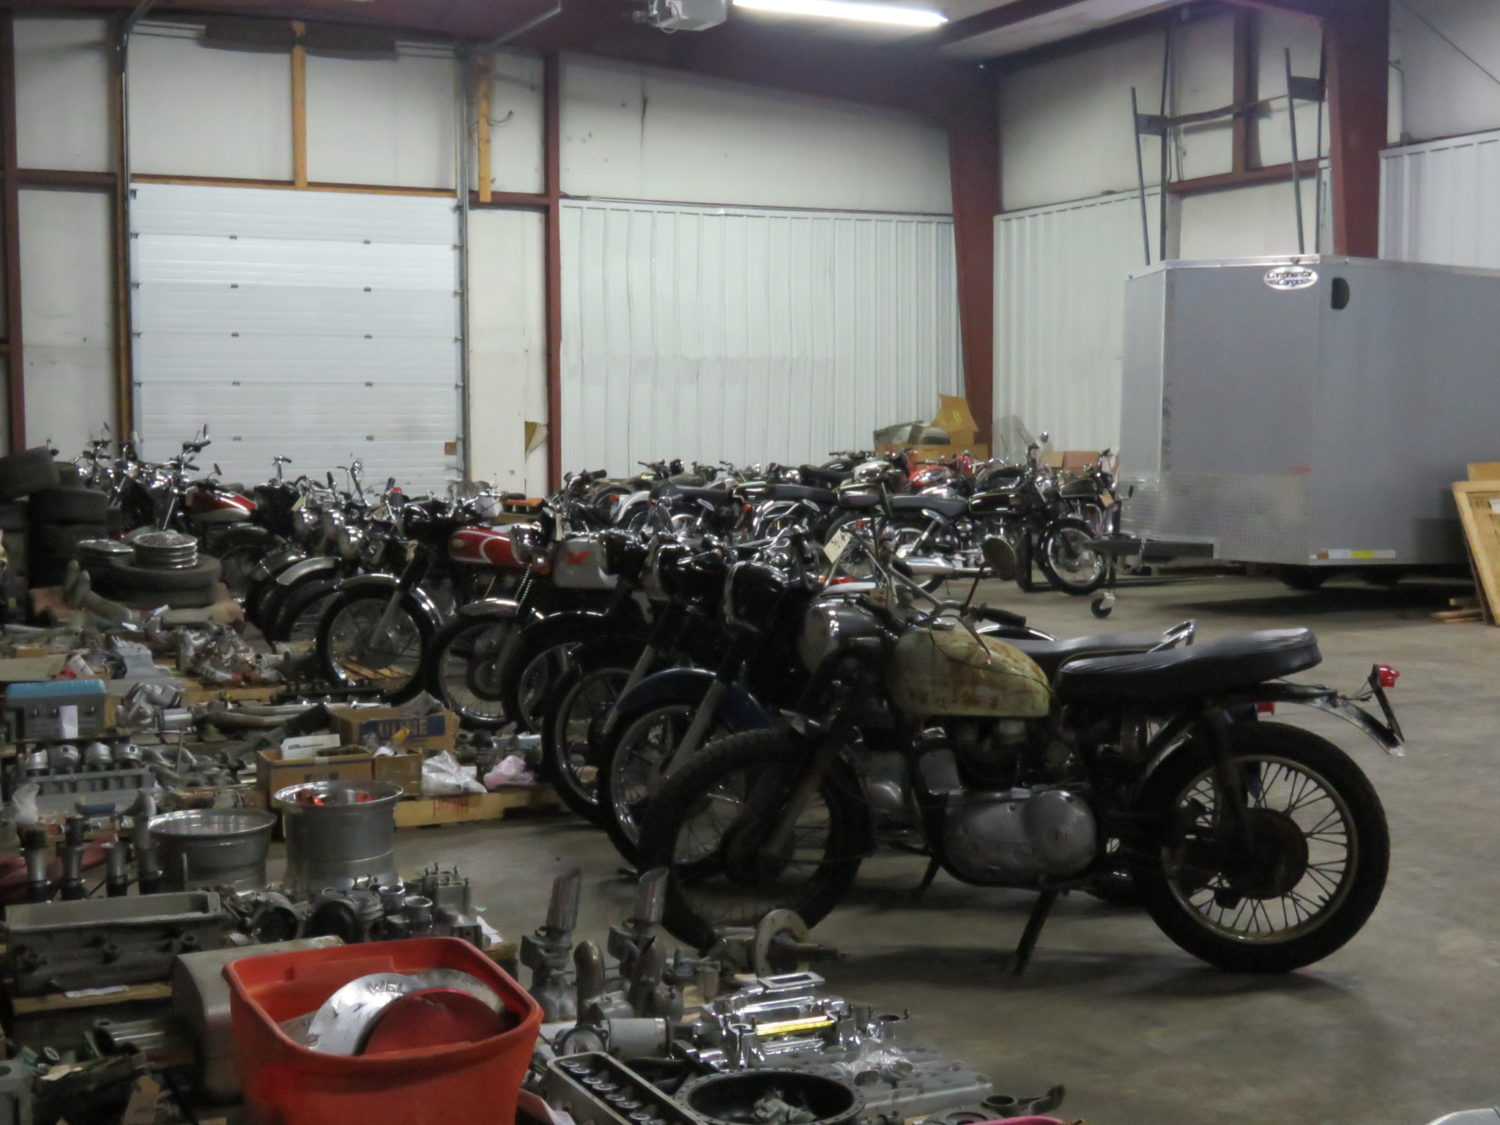 Amazing Vintage Motorcycles, Race Cars, Collector Cars & Parts! Watch for details! The JAB Collection - image 8